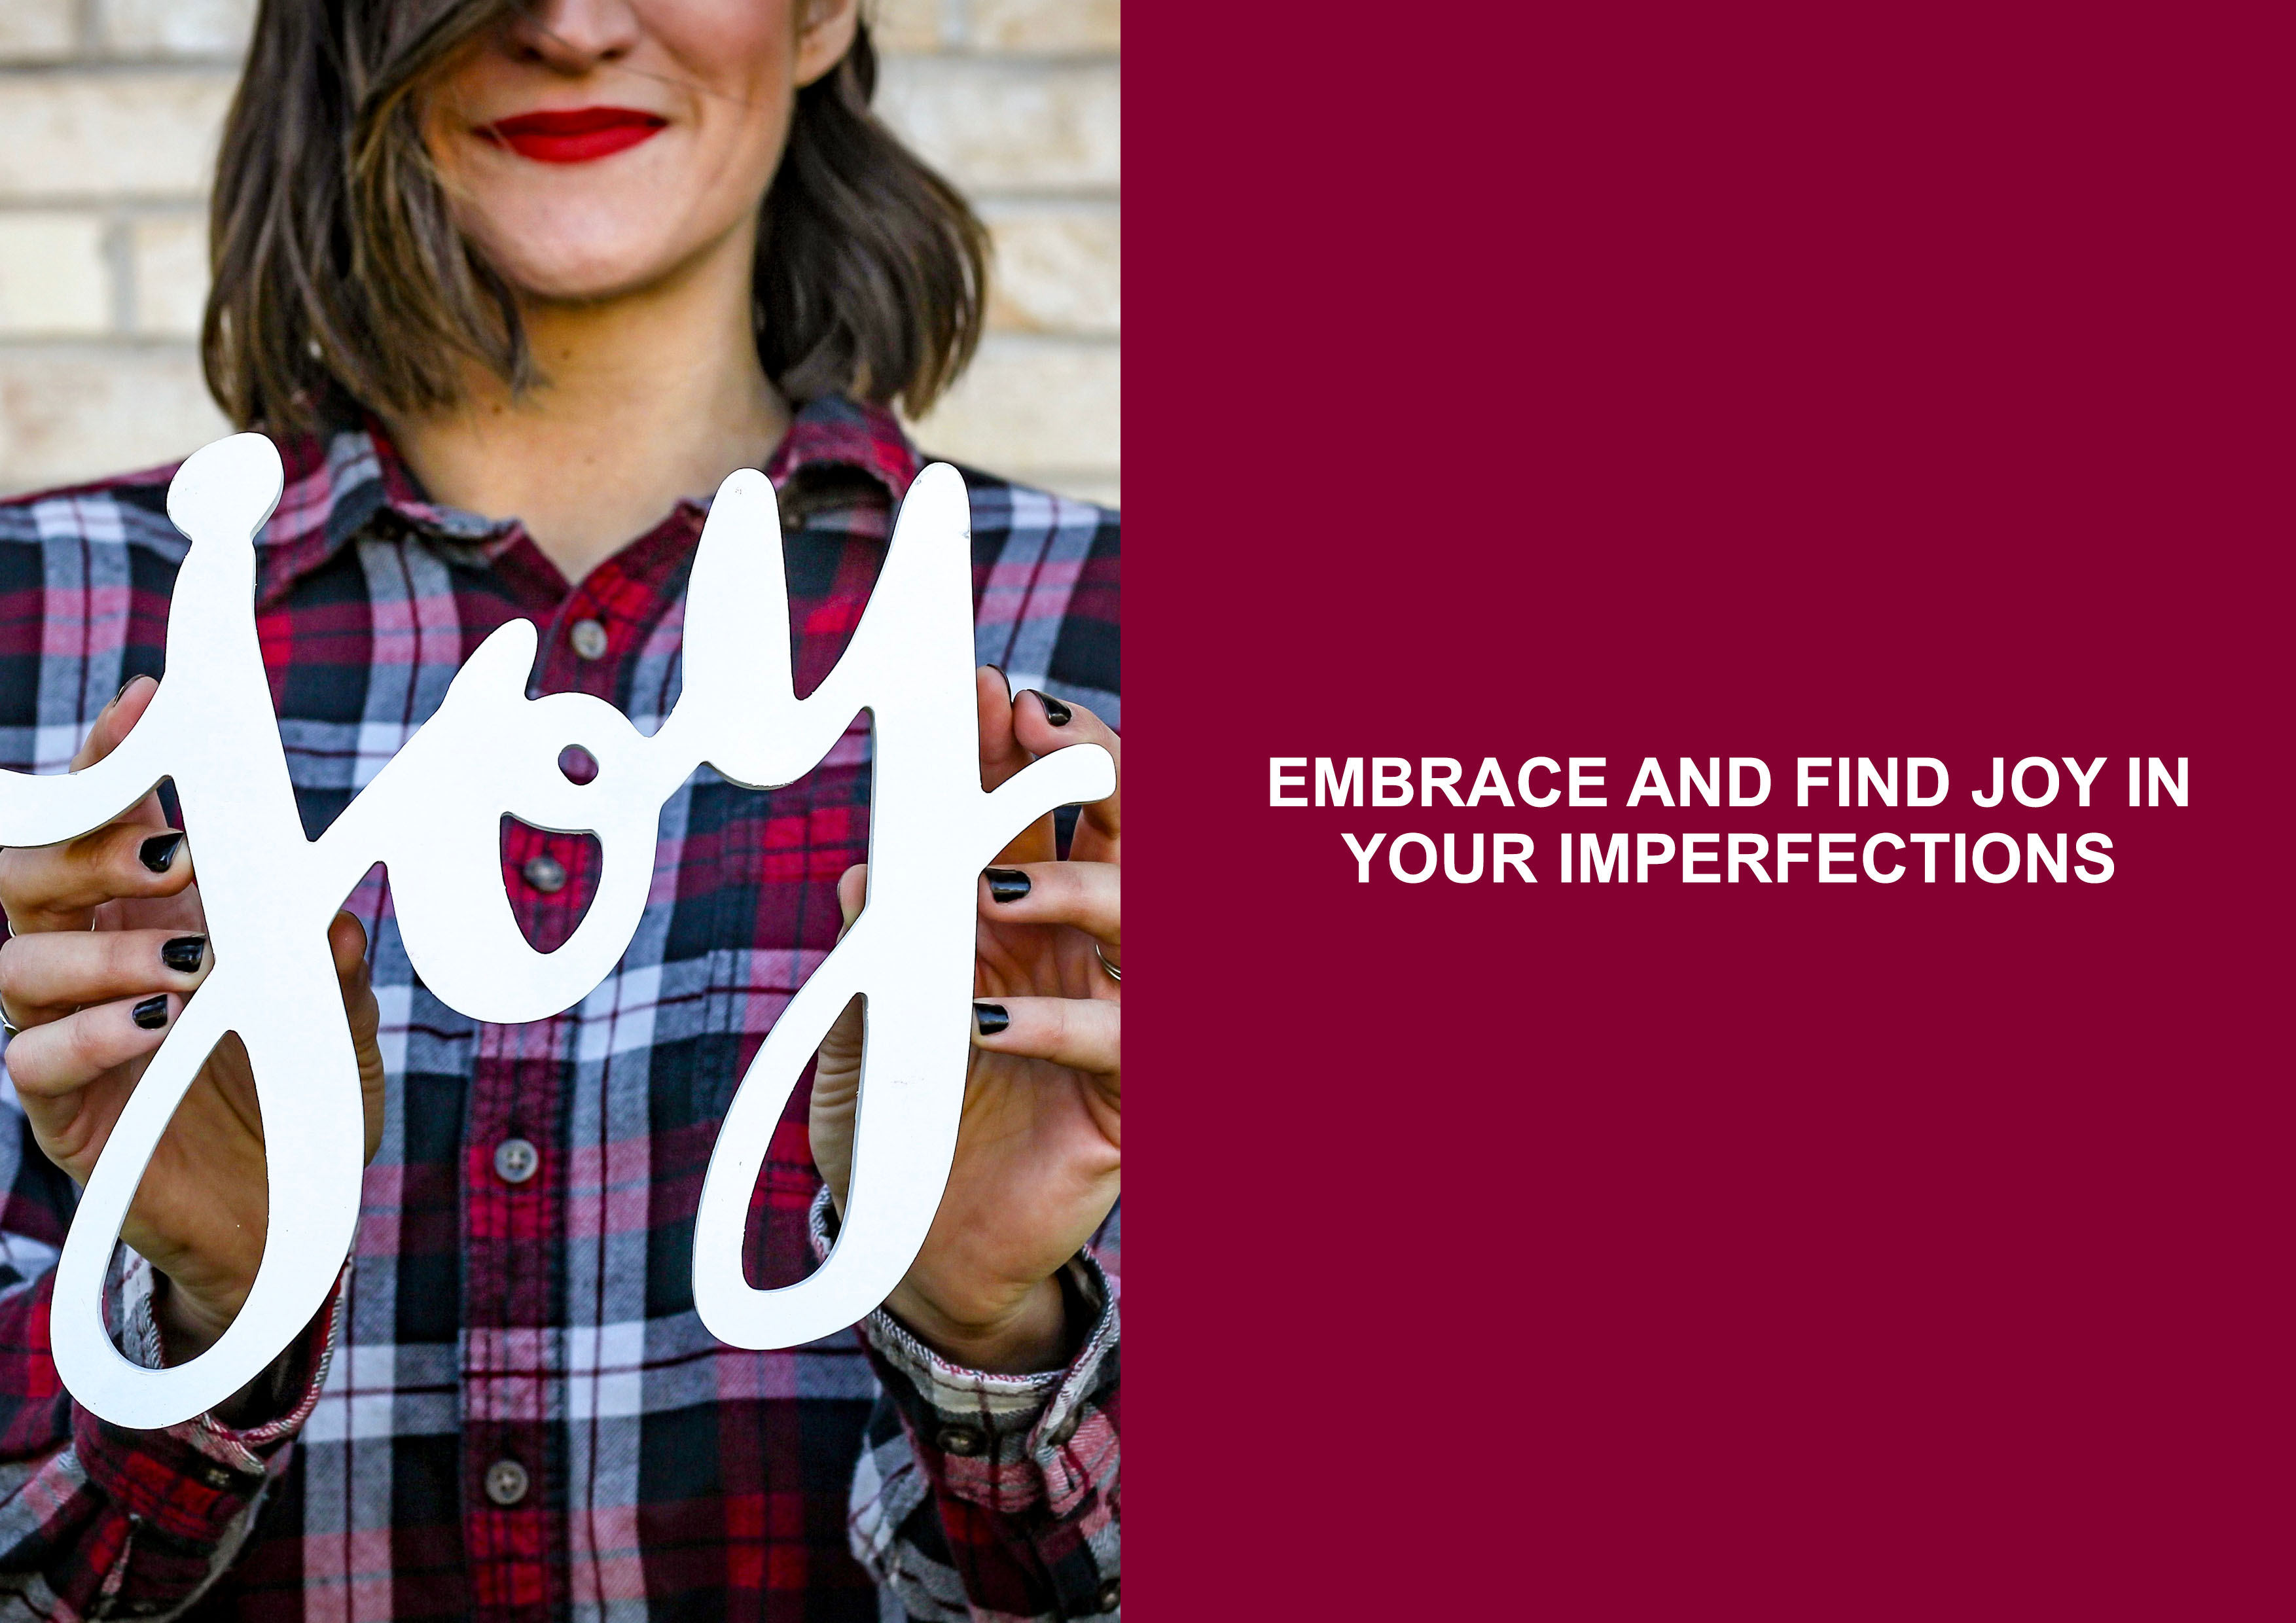 Embrace and Find Joy in Your Imperfections